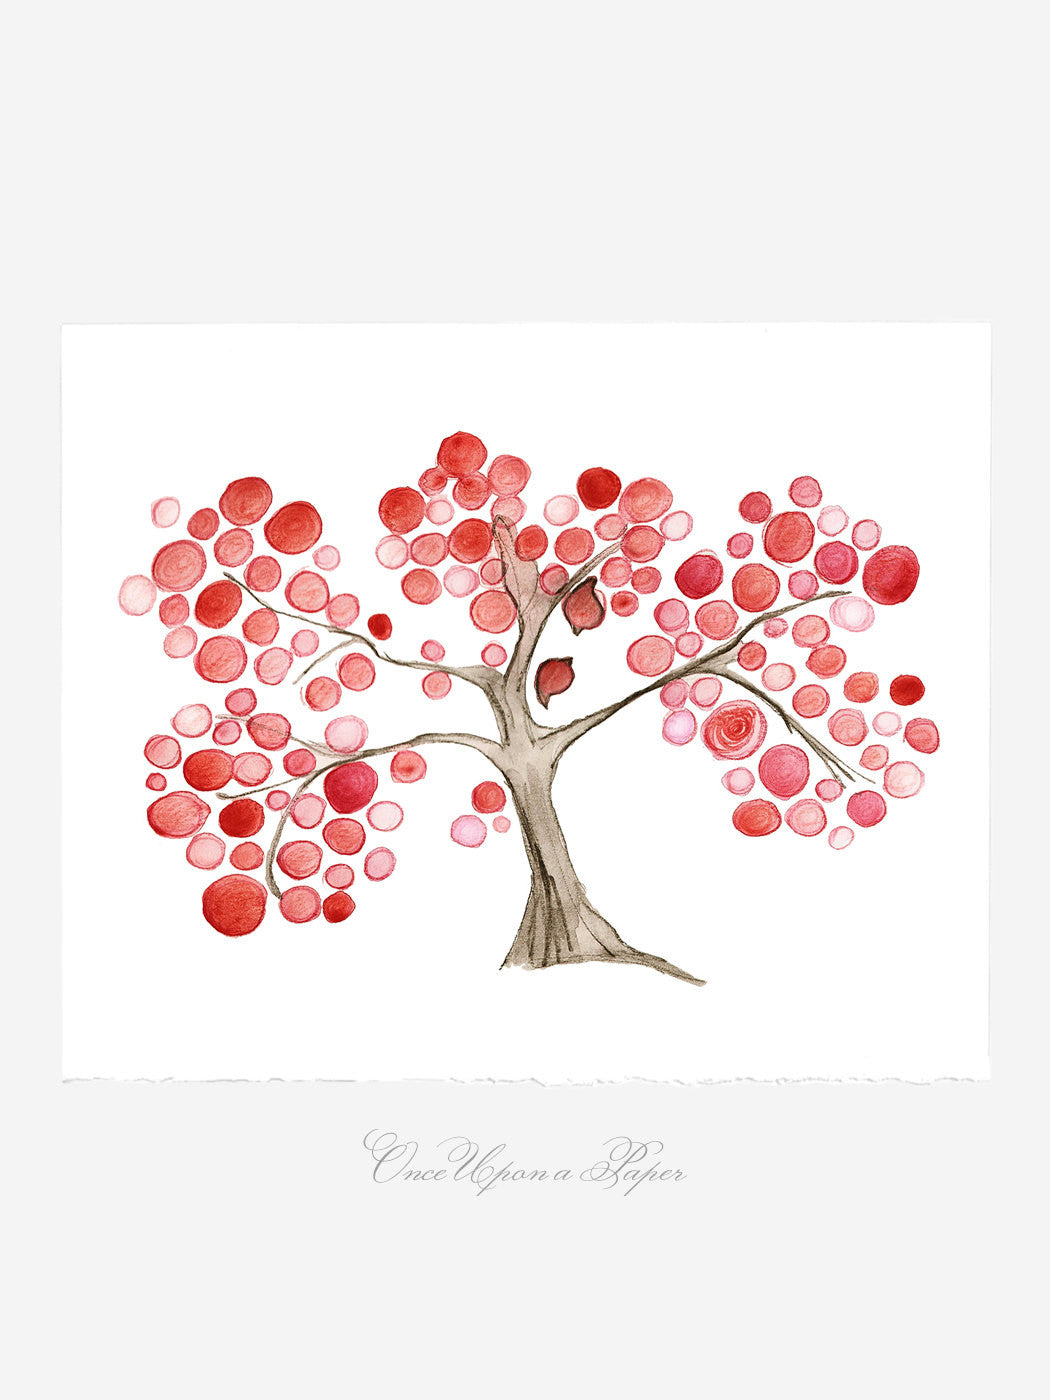 Mother Day Annyversary Gift - I Love my Mommy tree - Giclee Art Print Reproduction of Watercolor Painting -Trees of Life Collection